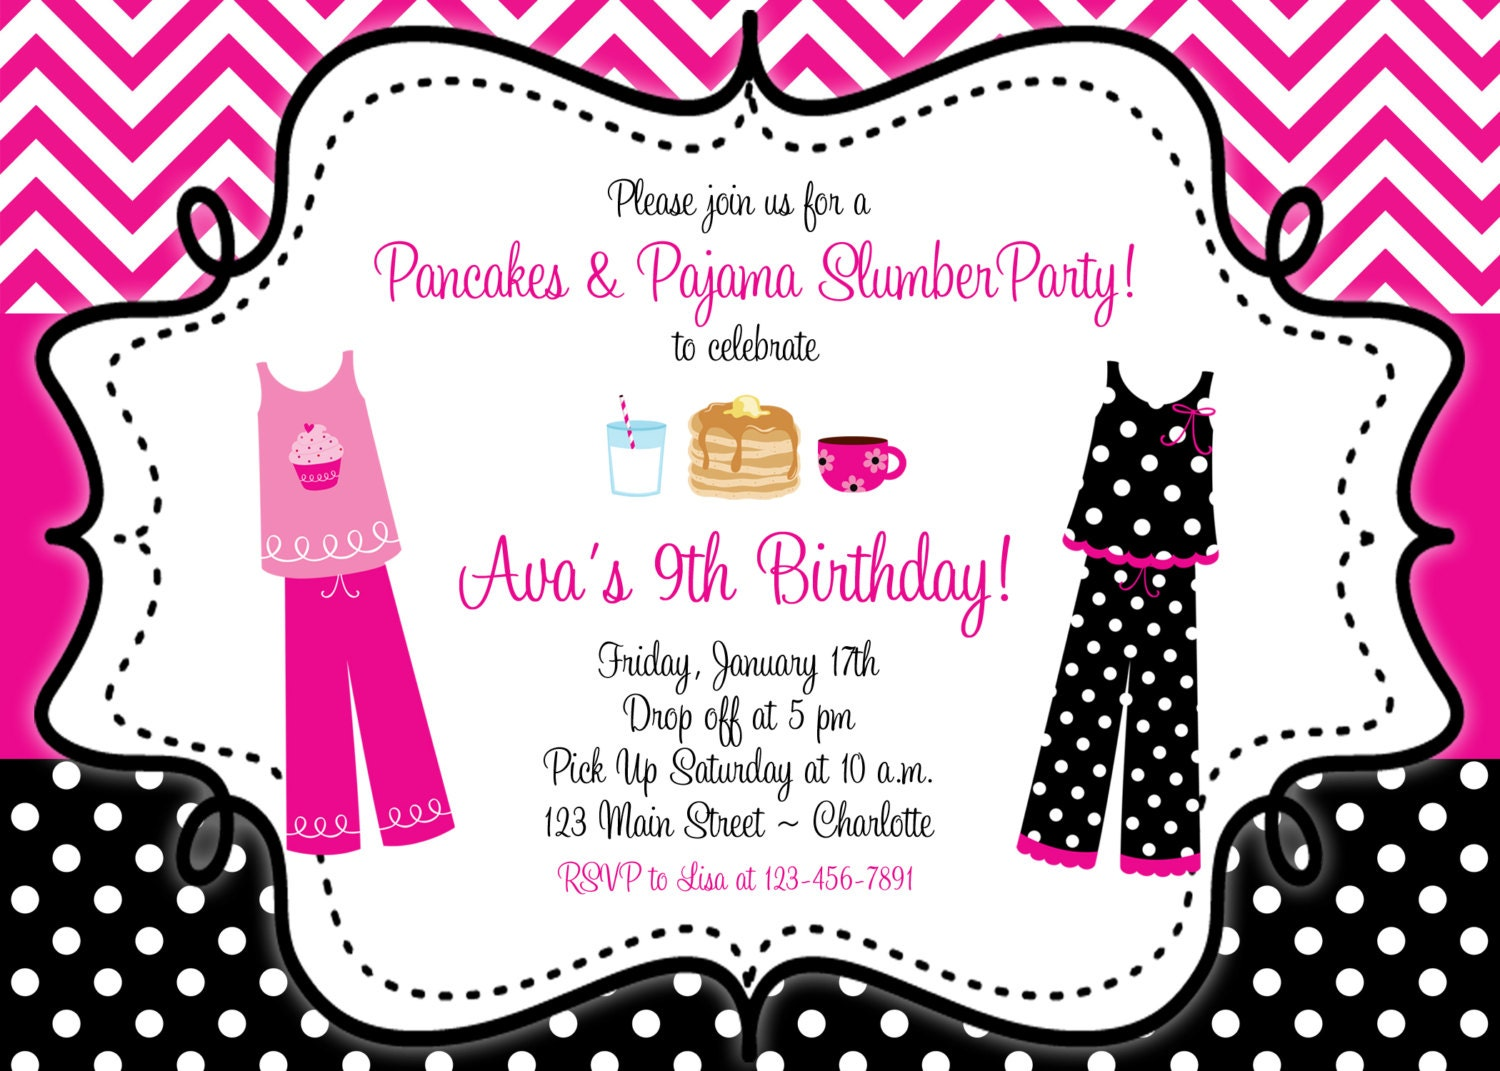 Pajama party invitation wording for adults || Exercisingtrips.ga